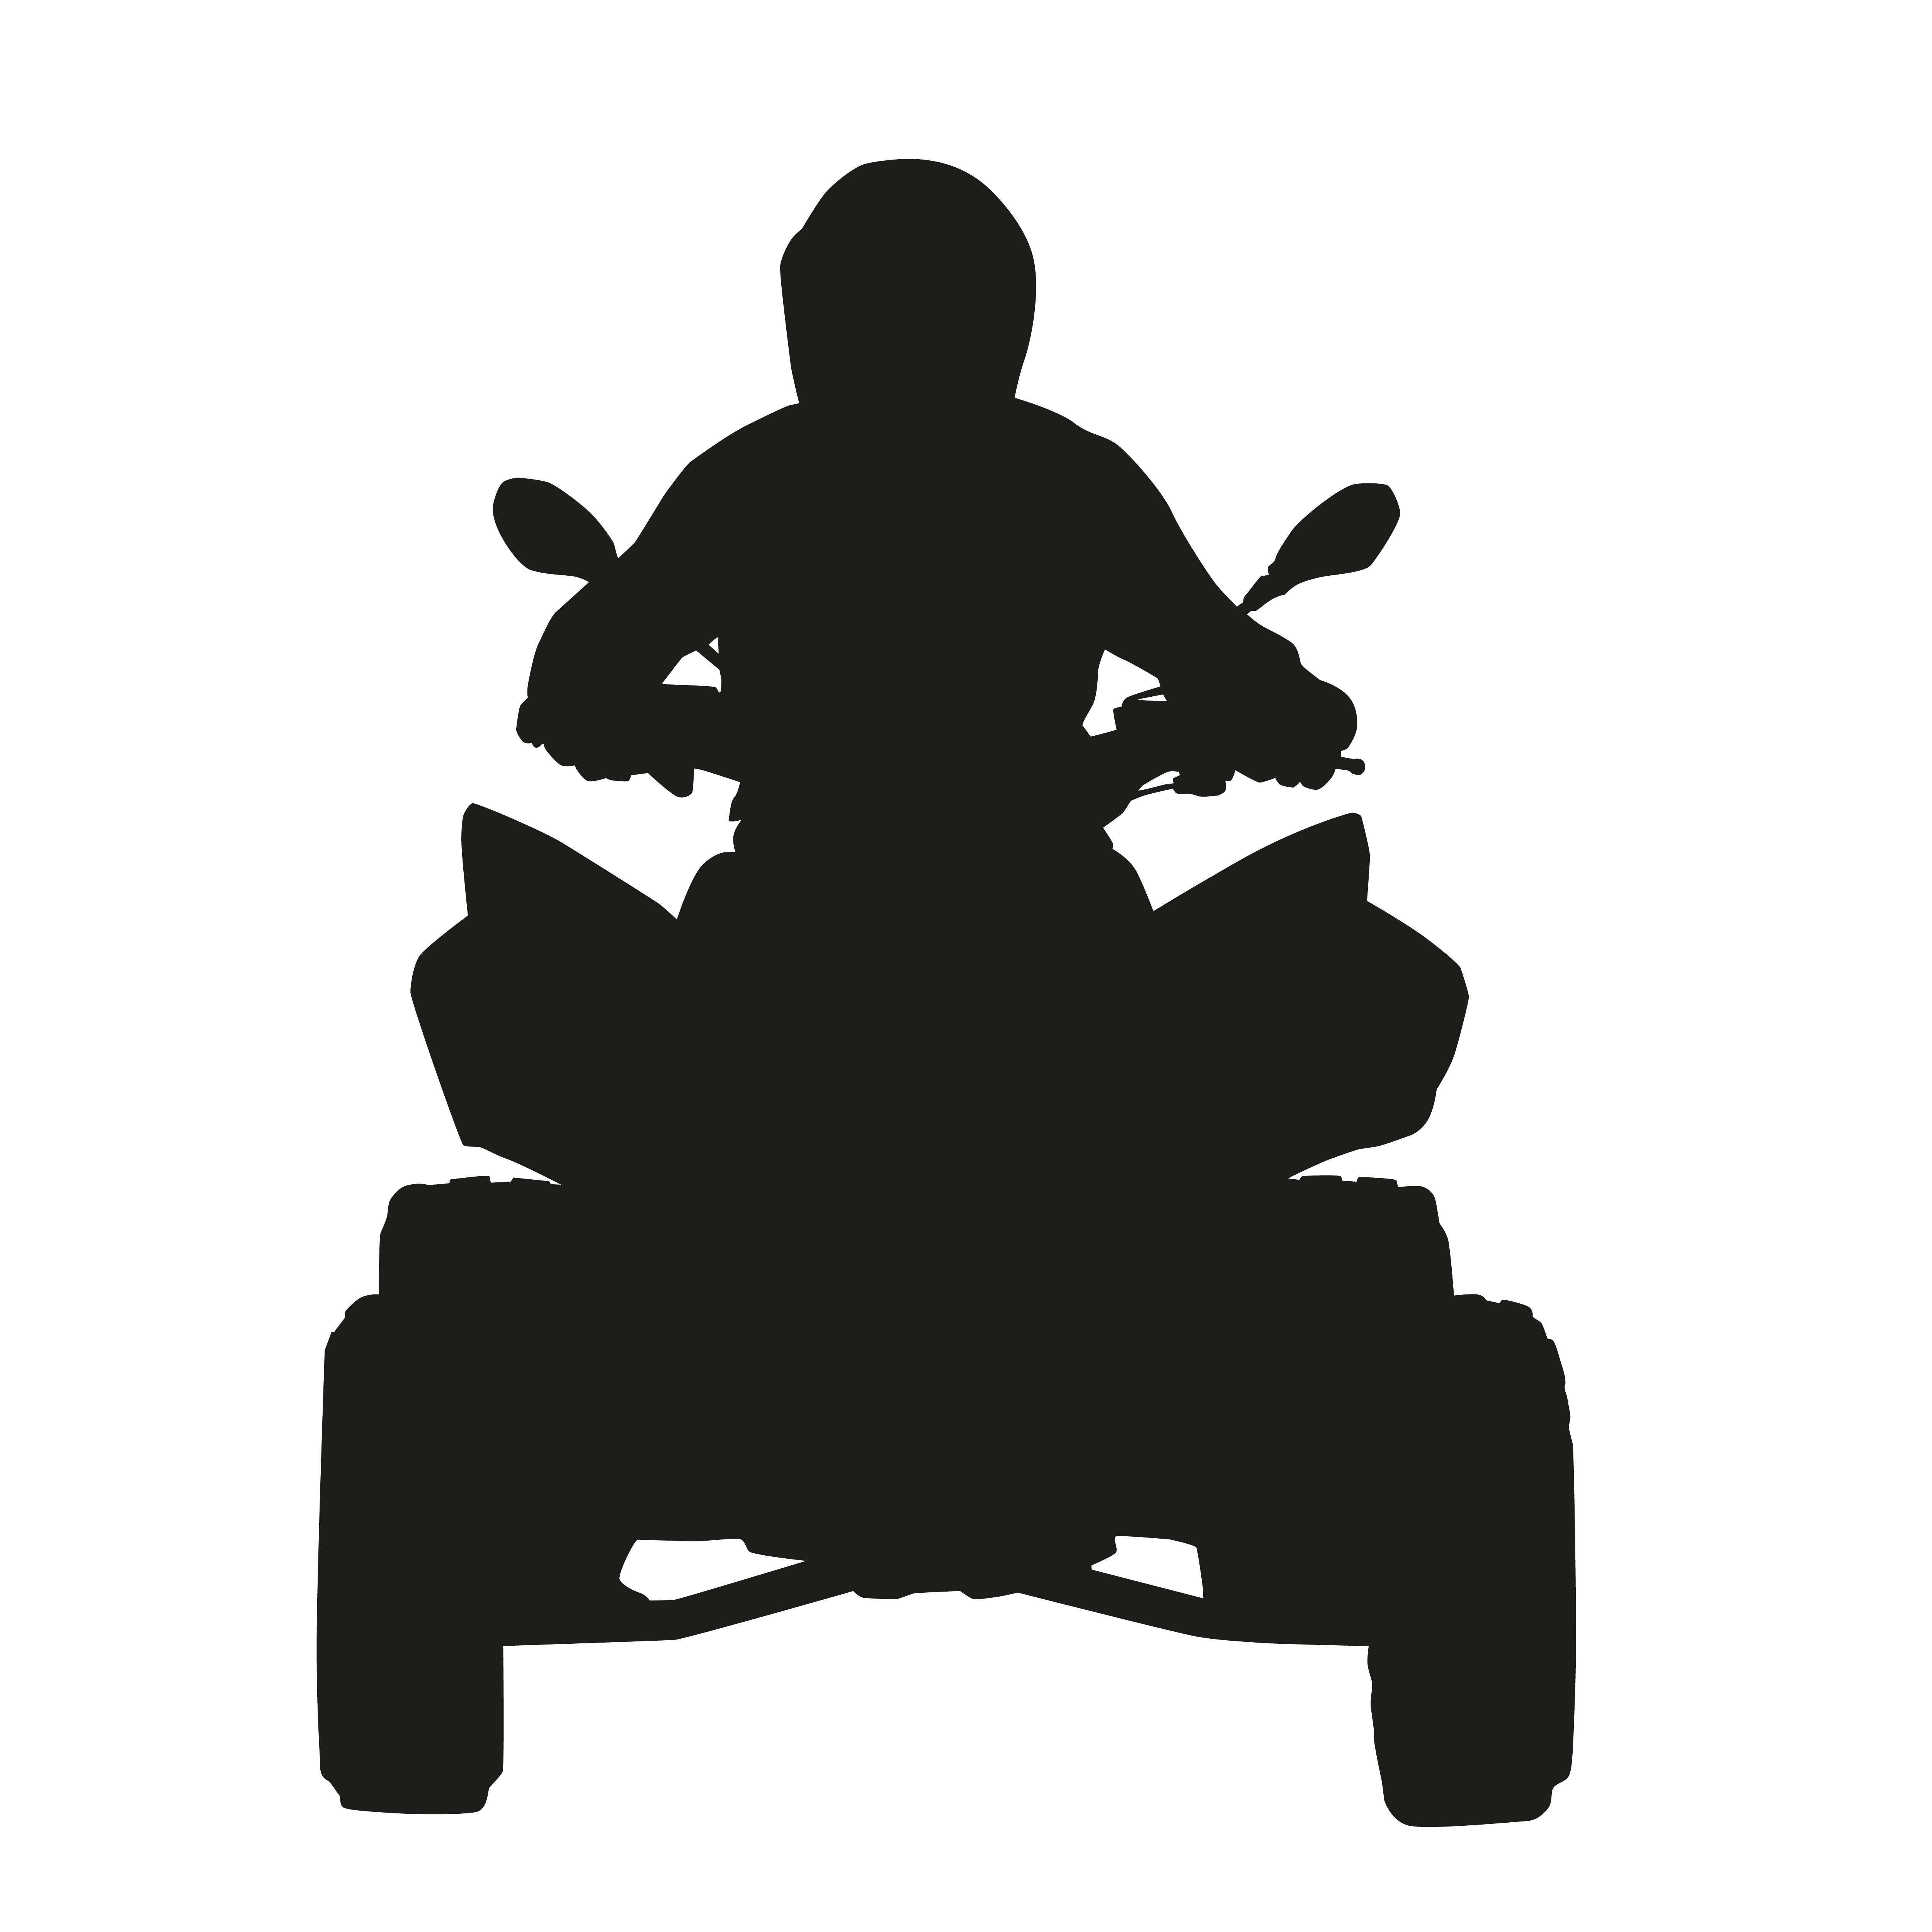 ATV Rider, ATV, all-terrain vehicle riding